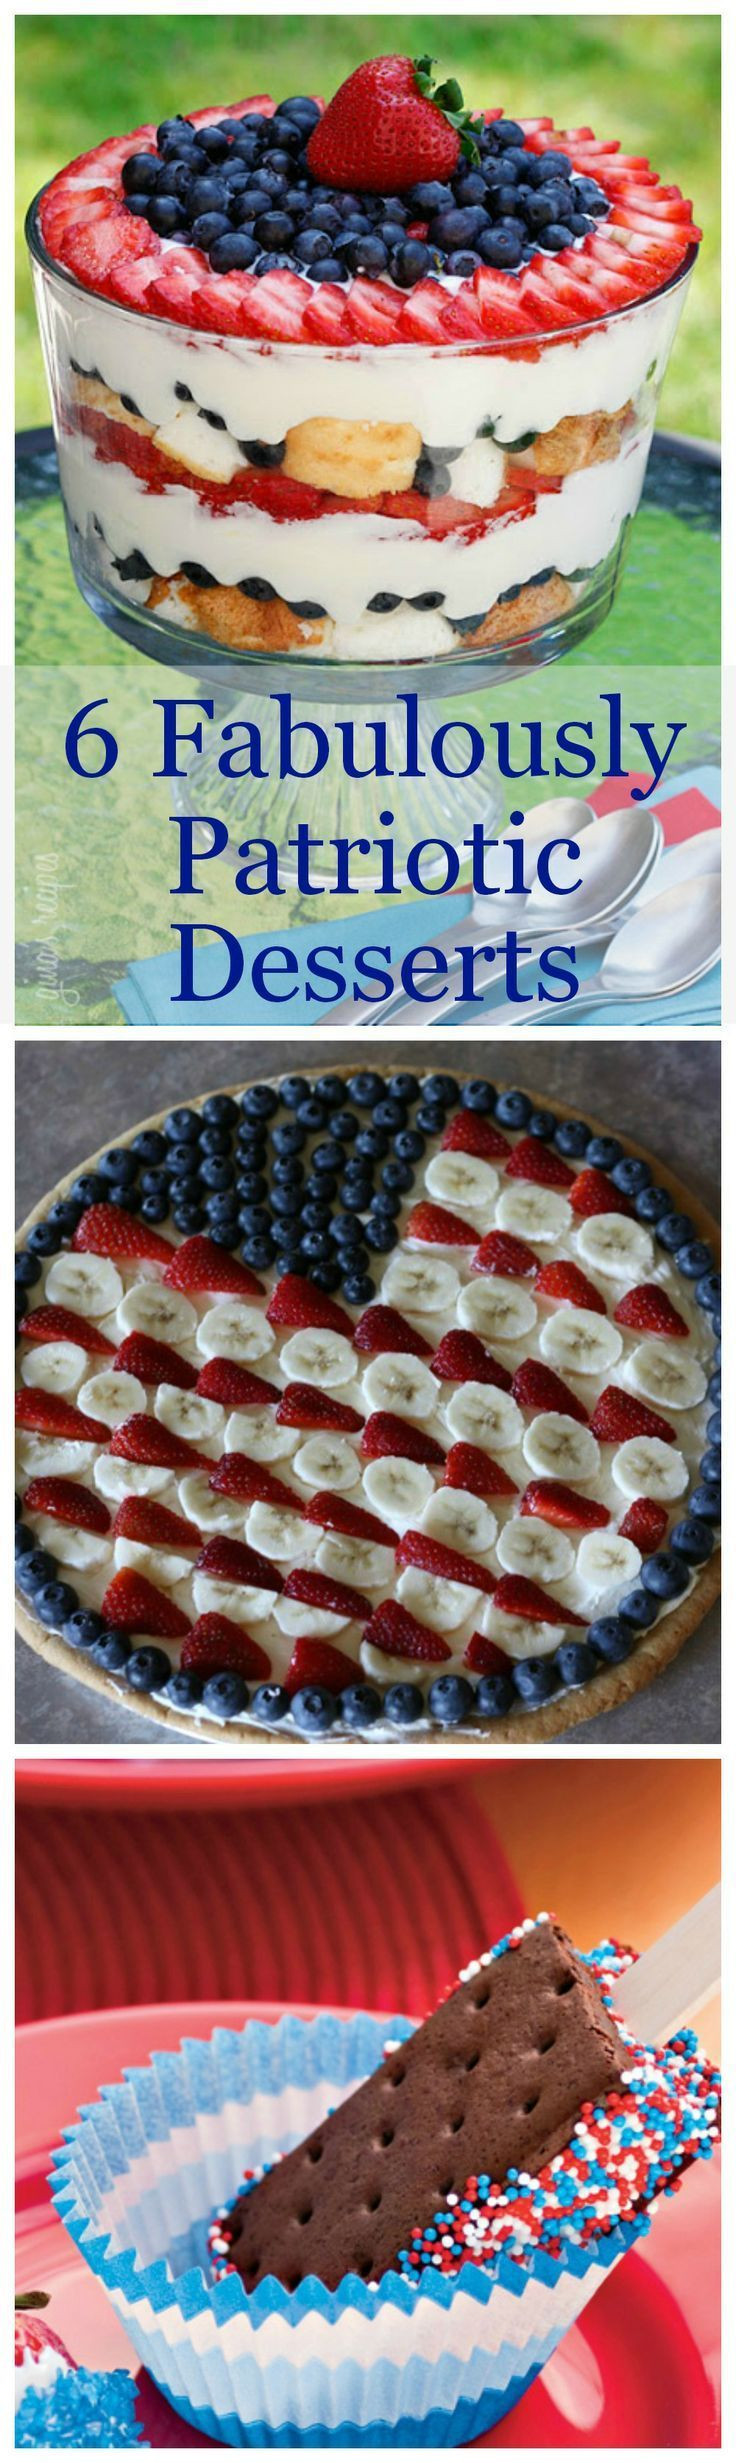 Desserts For 4Th Of July Party  10 best images about 4th of July on Pinterest